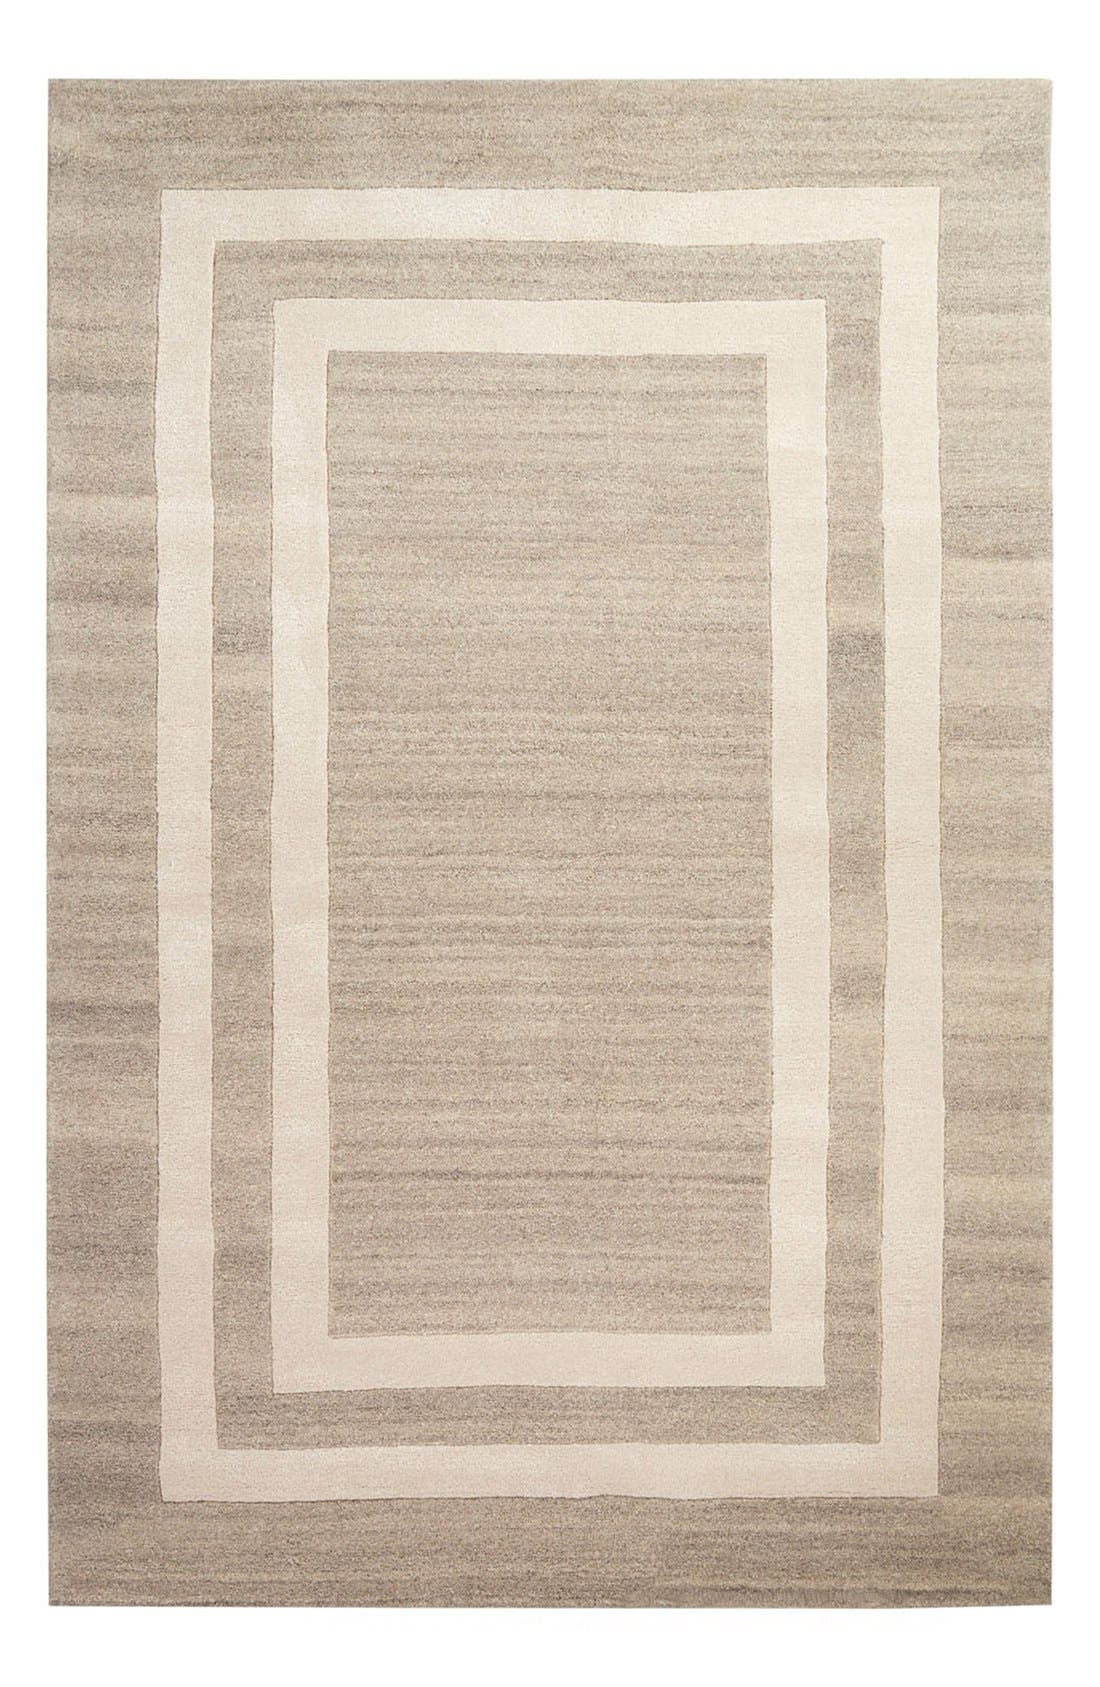 Alternate Image 1 Selected - kate spade new york 'gramercy - border pattern' wool blend rug